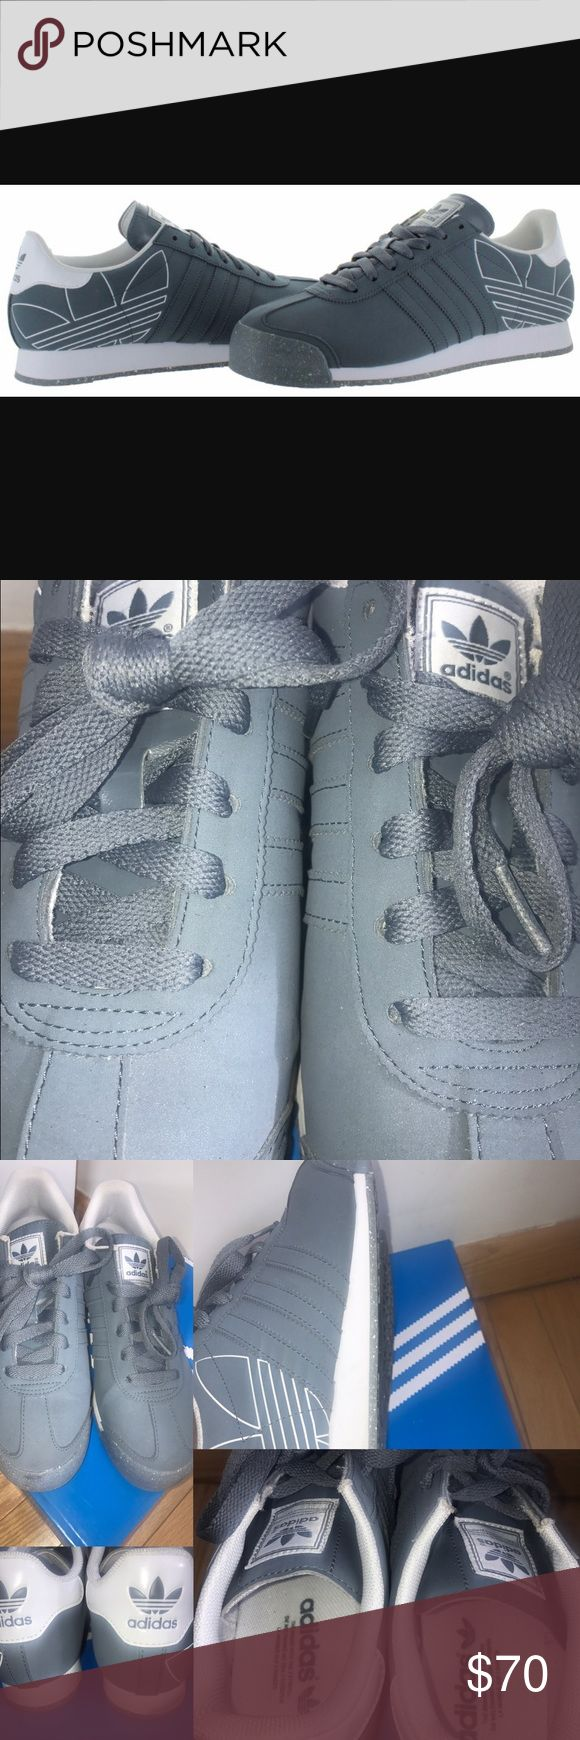 ADIDAS ORIGINAL SAMOA GREY MENS RARE SNEAKERS ADIDAS ORIGINAL SAMOA GREY MENS RARE SNEAKERS - Can be worn by woman as well . SOLD OUT IN STORES AND ON EBAY IN THIS COLOR . Size 6.5 men's which is usually a 8 in woman's  Worn about 3 times in great condition 8/10 . Has a wear mark on the right back sole ( see pictures) this can come out with cleaning however . These sell for $100 Adidas Shoes Sneakers